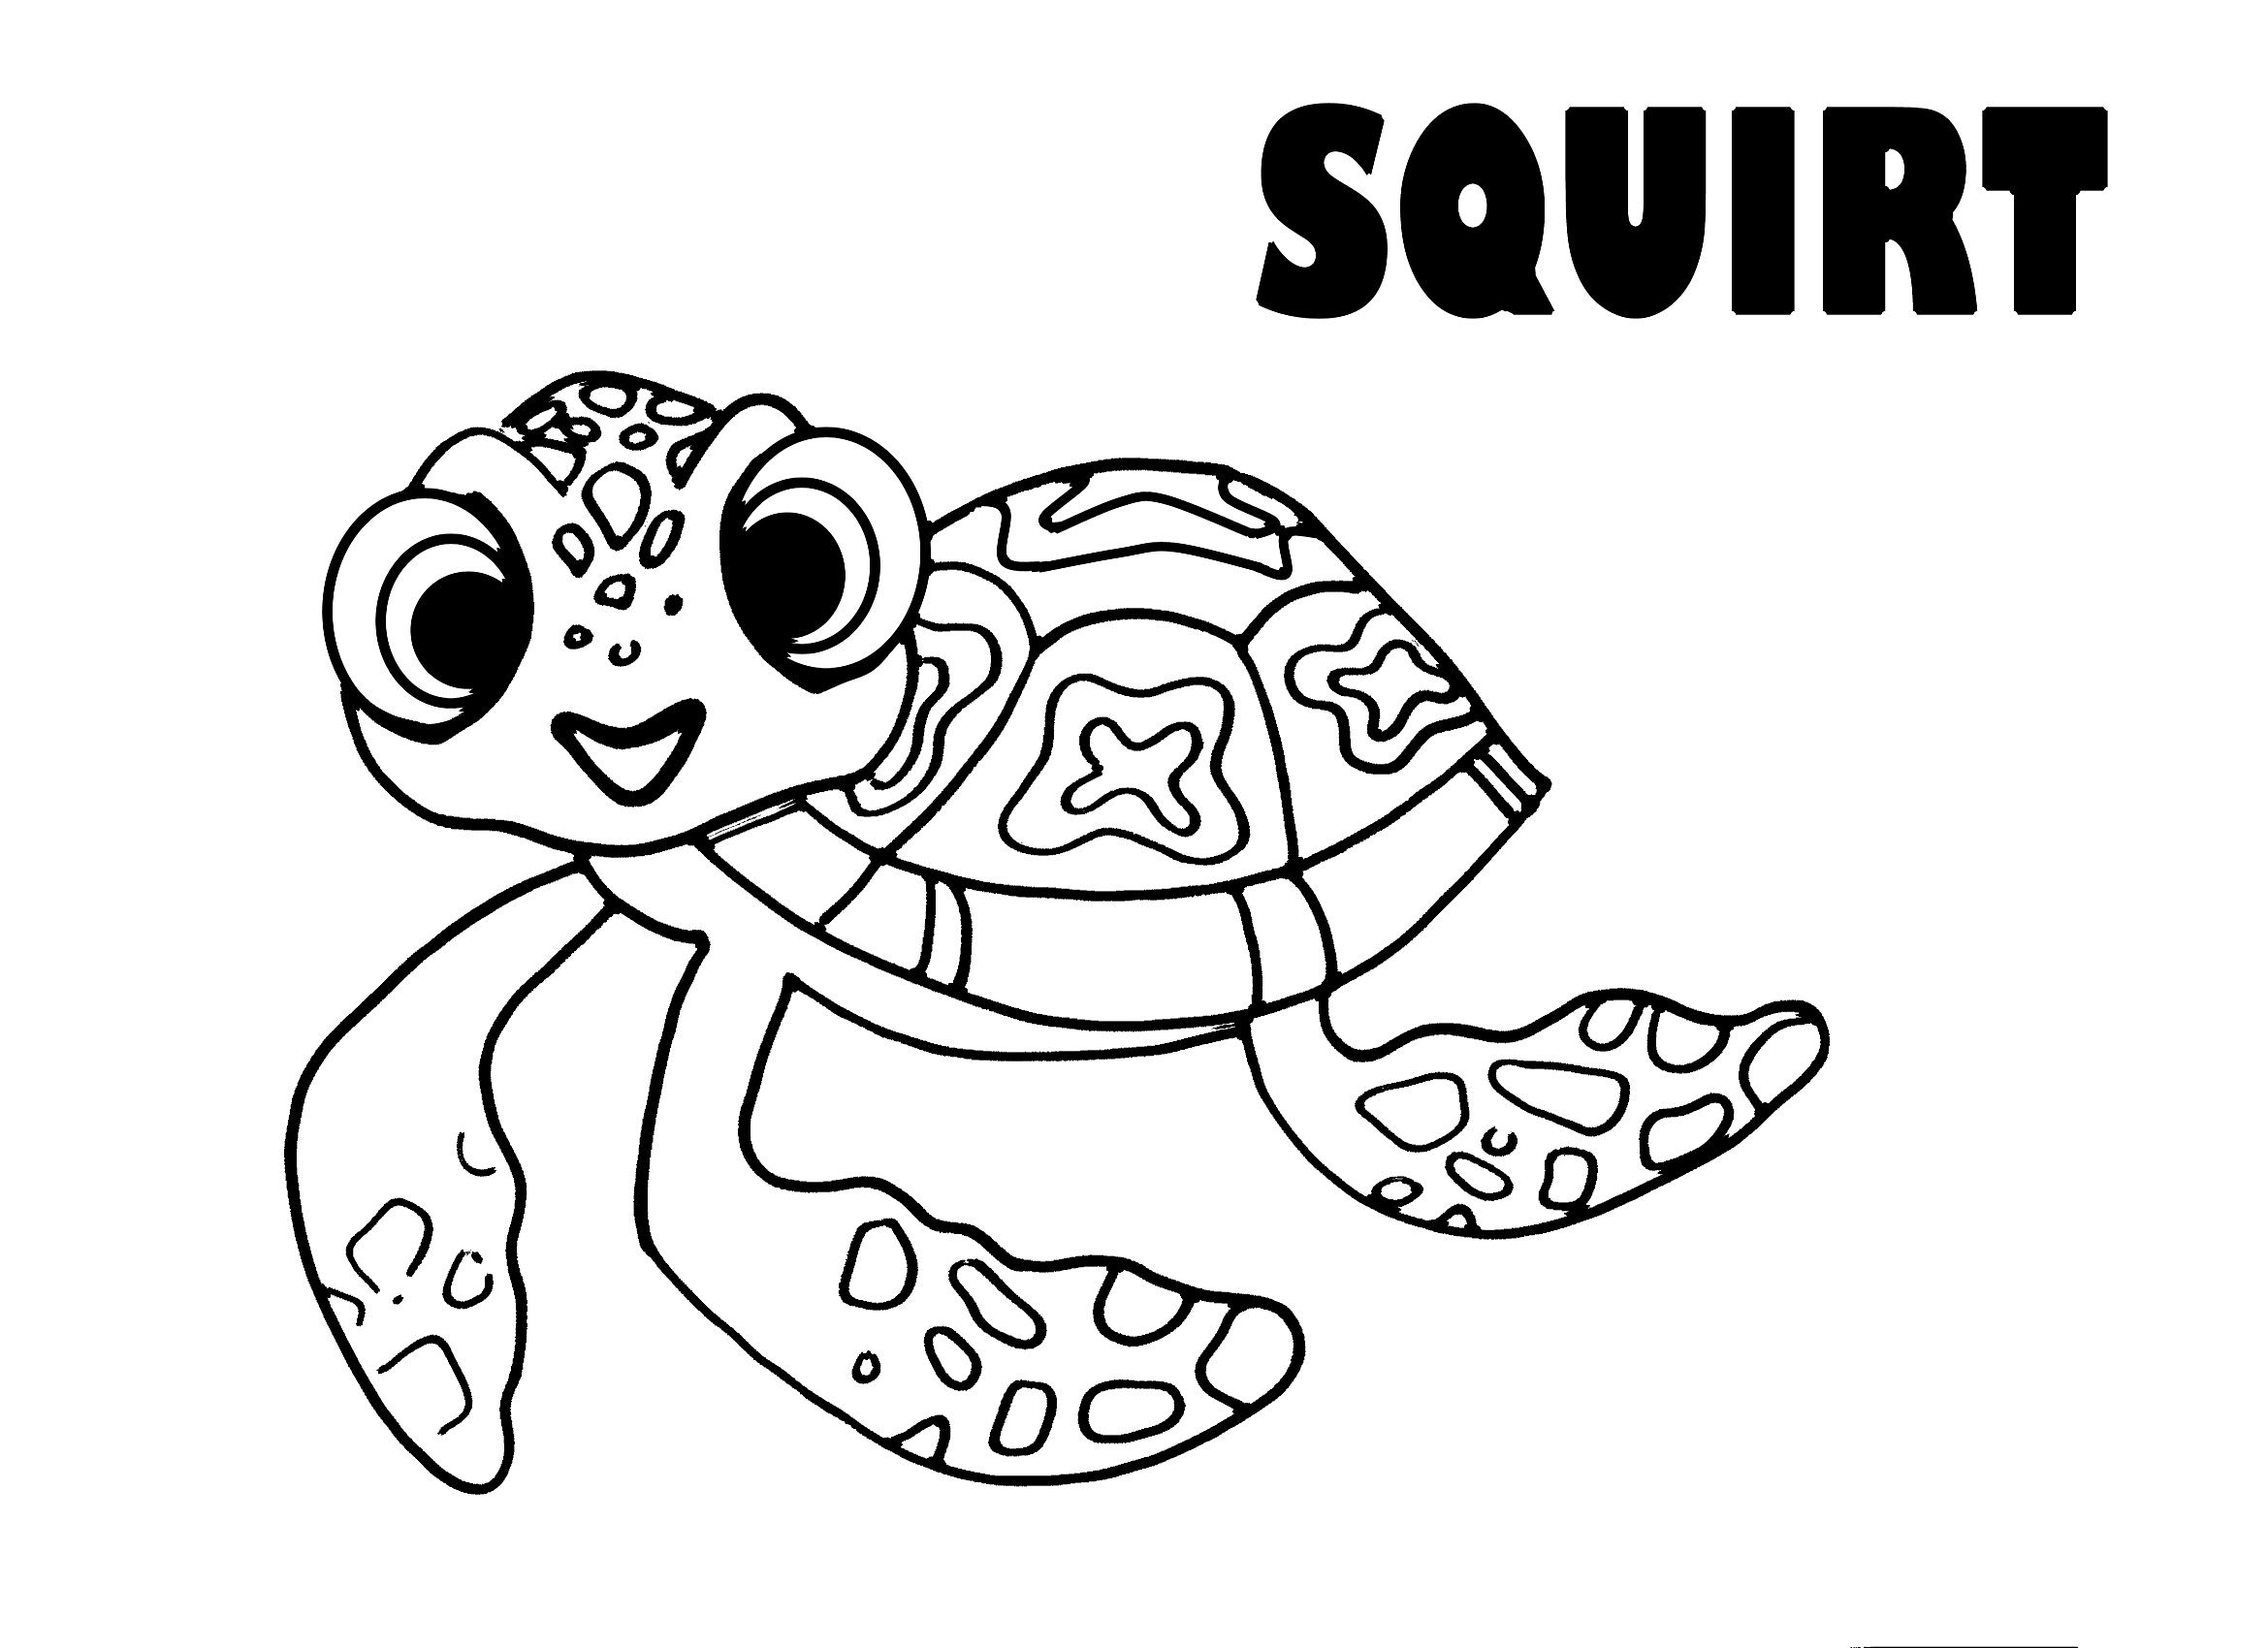 Squirt from Finding Nemo coloring page | Pinterest | Finding nemo ...